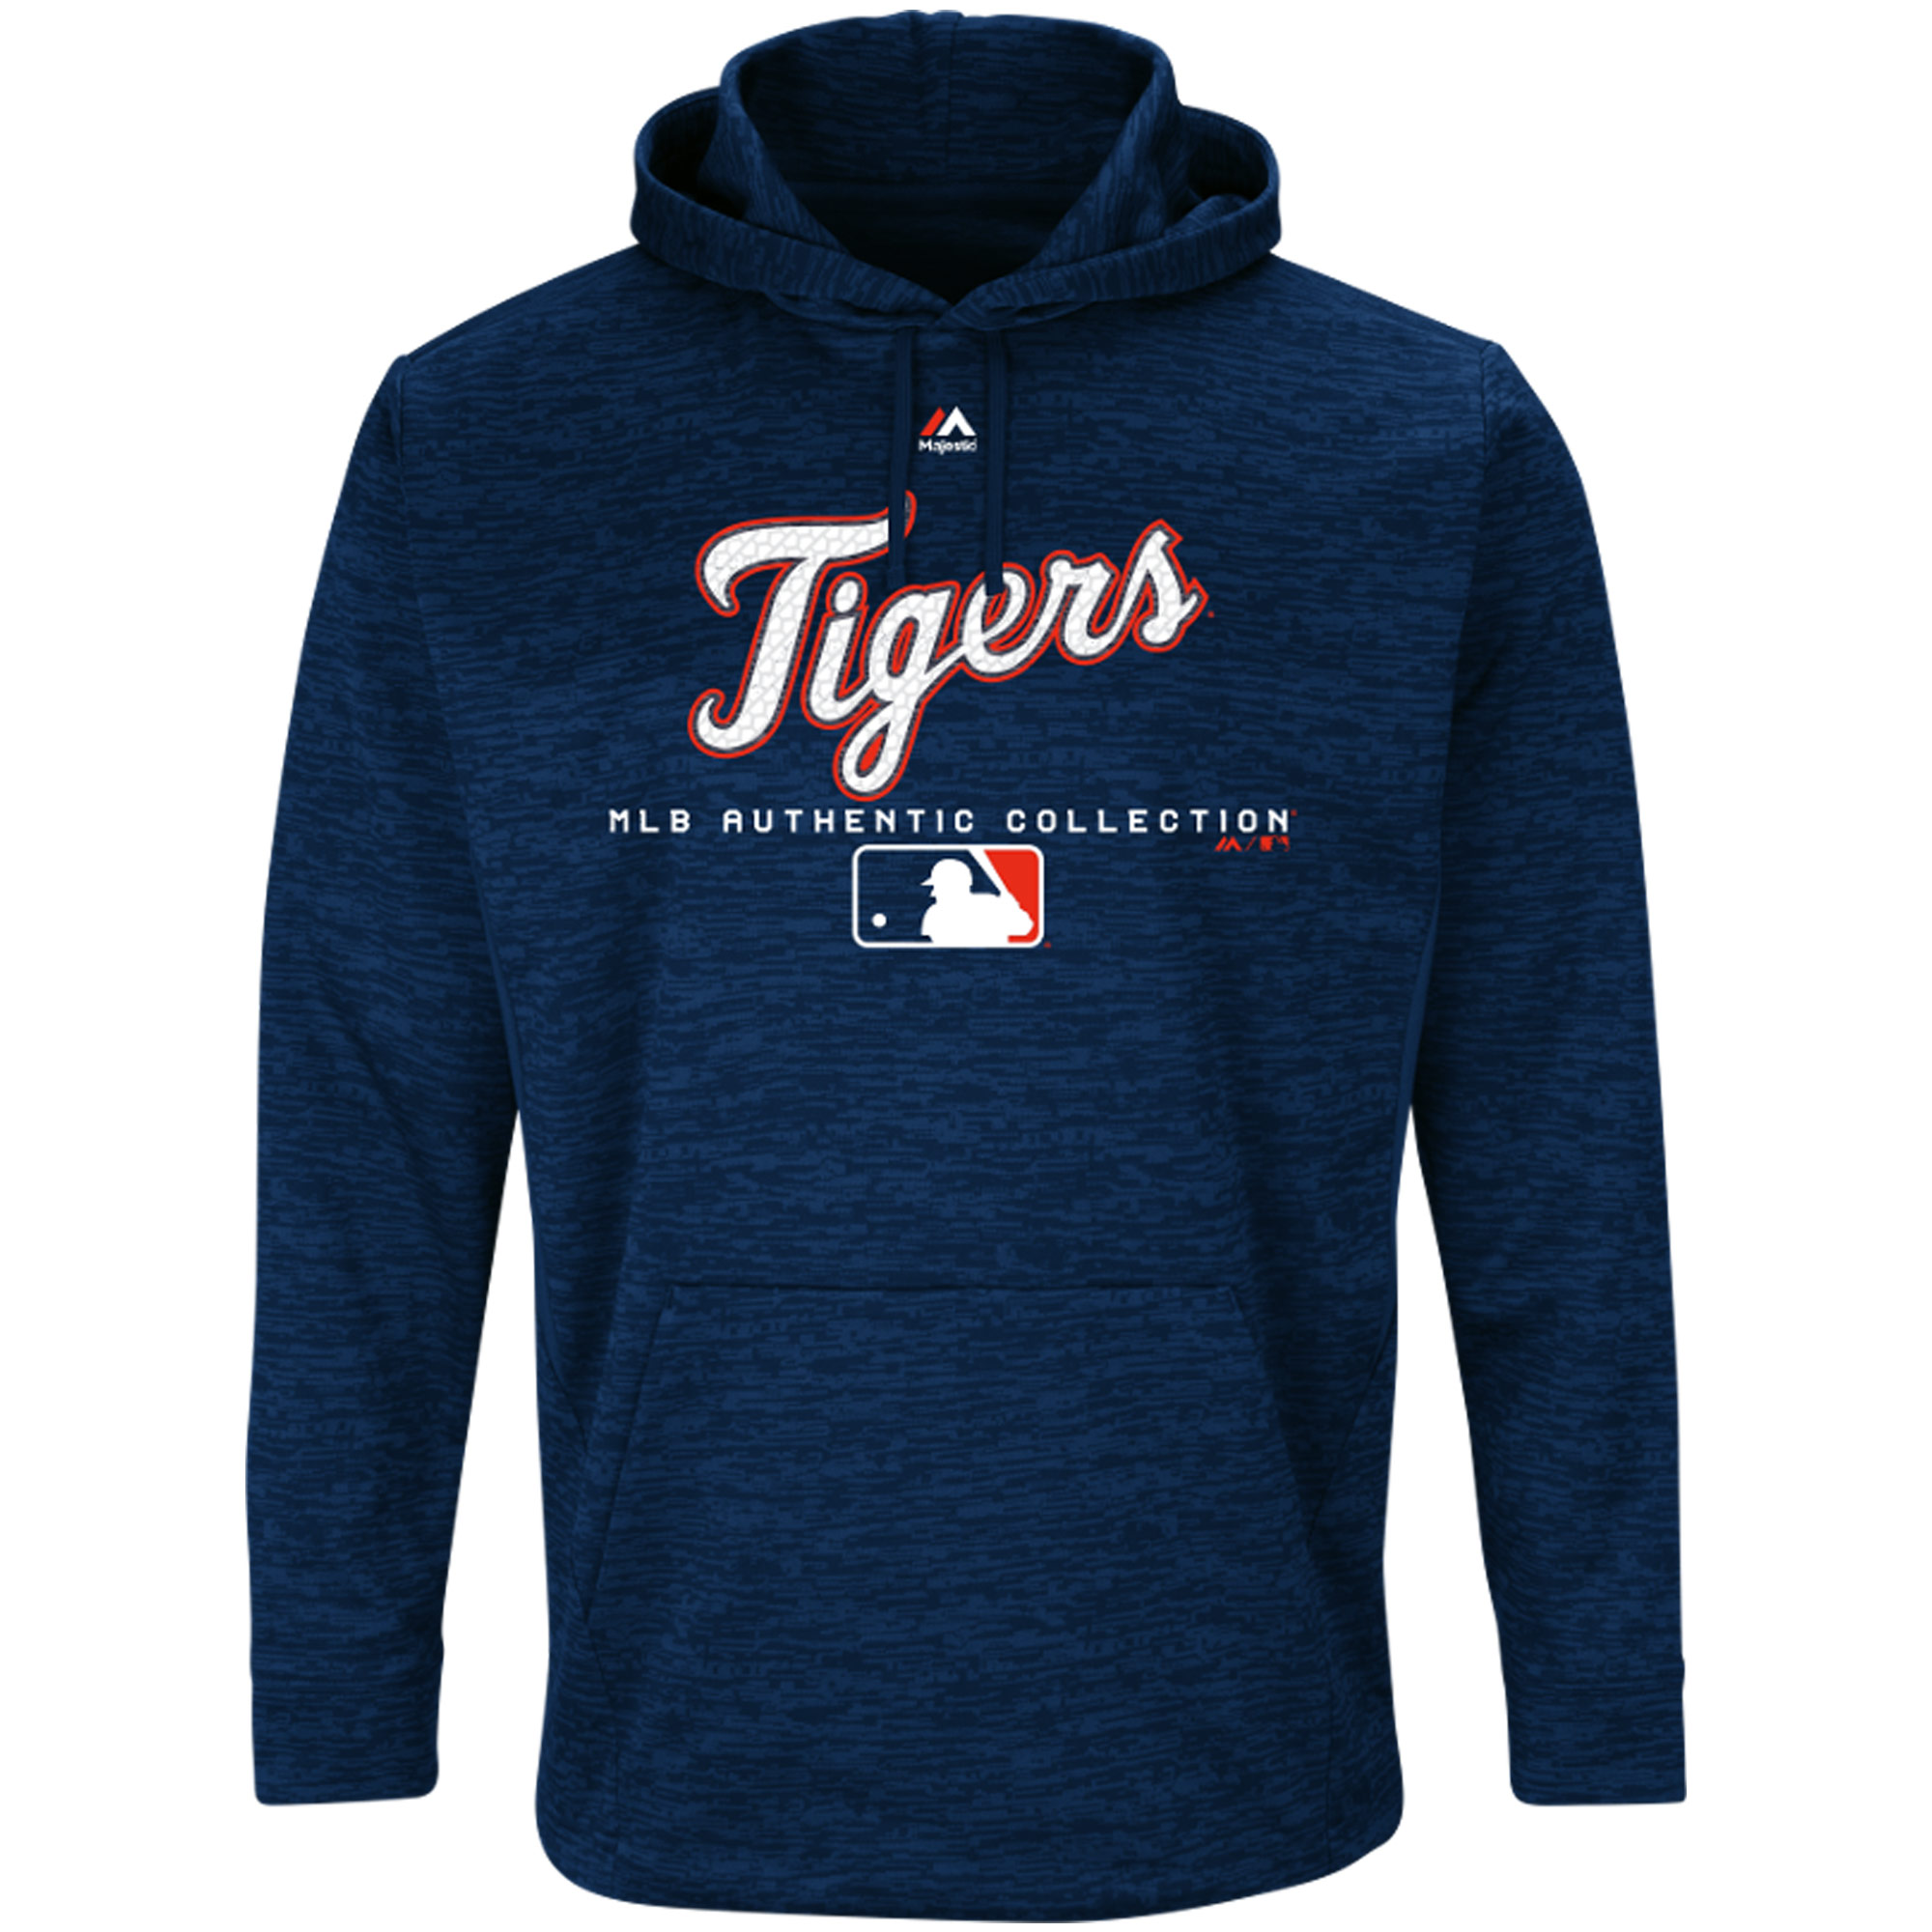 Detroit Tigers Majestic Authentic Collection Team Drive Ultra-Streak Fleece Pullover Hoodie - Navy